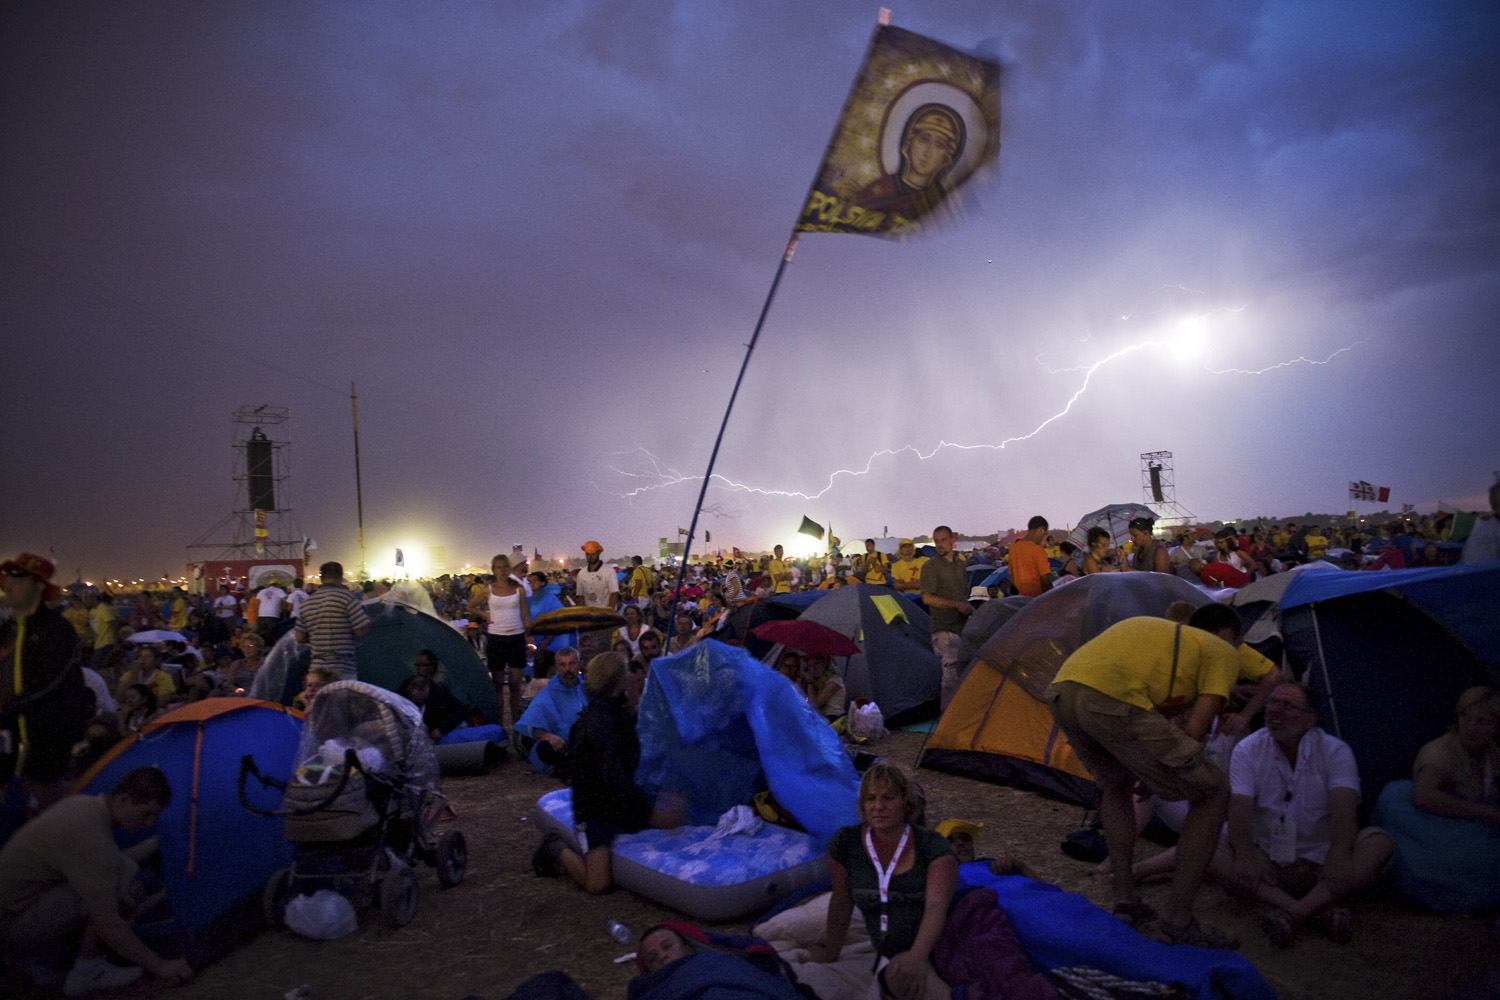 August 20, 2011. Lightning illuminates the sky as a storm occurs the during a Vigil as part of the World Youth Day 2011 in Madrid, Spain.